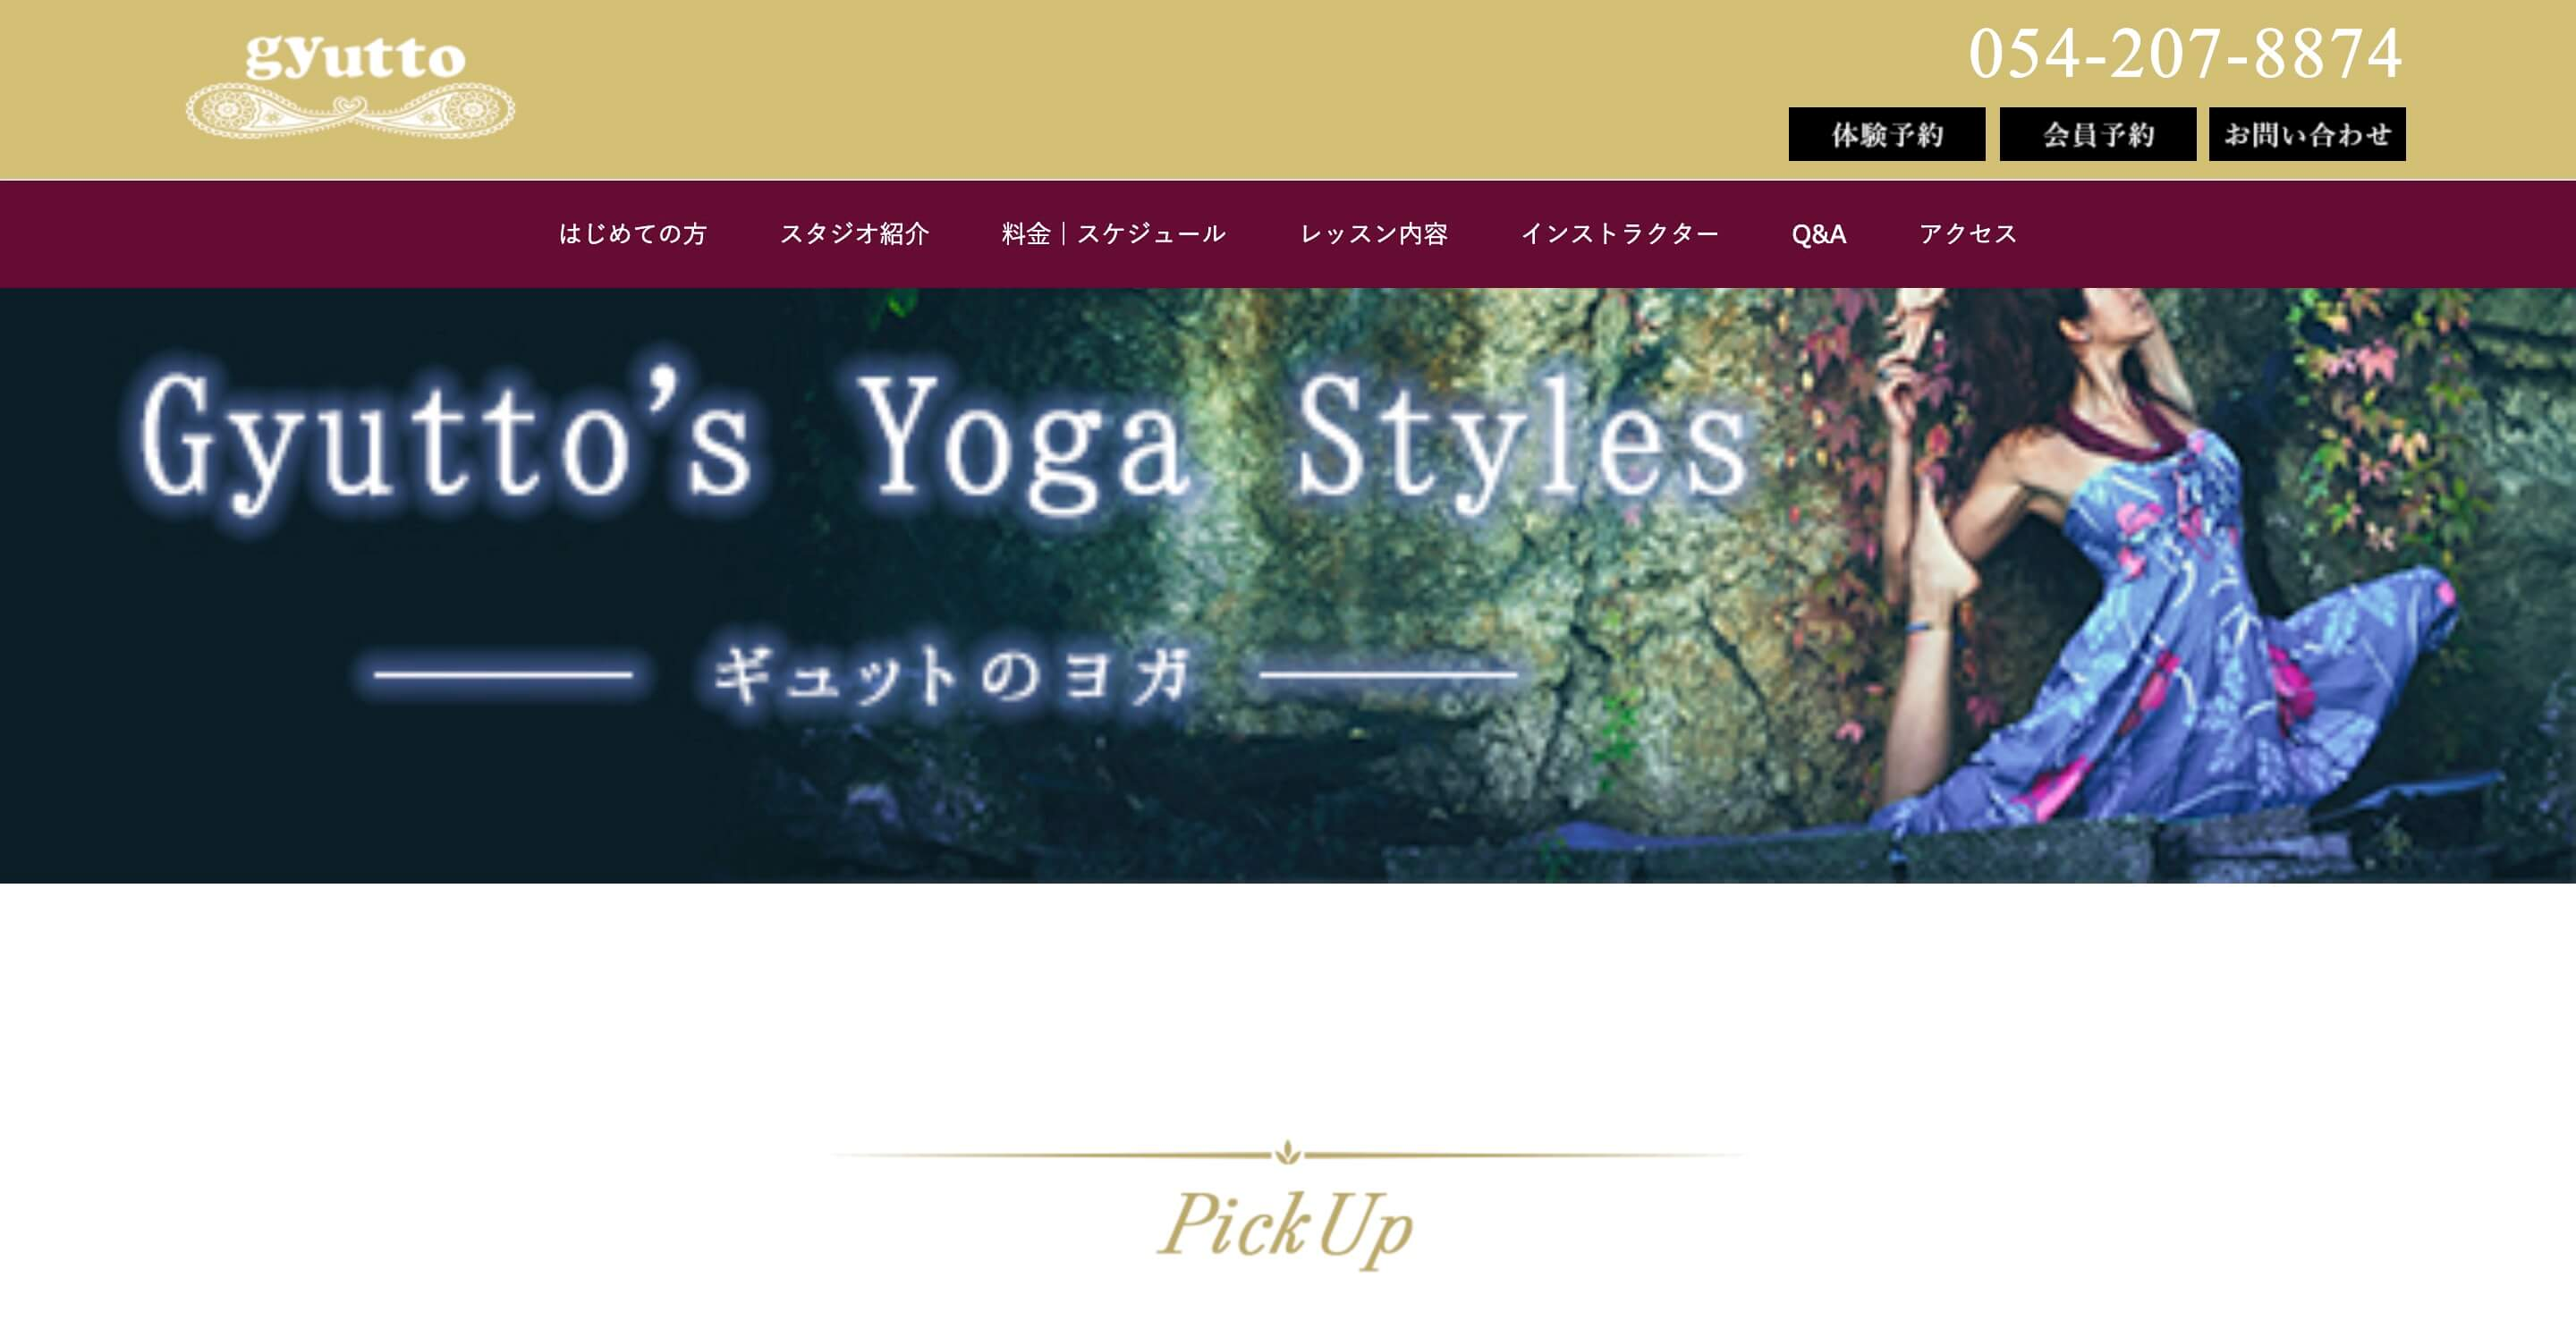 Yoga Studio gyutto